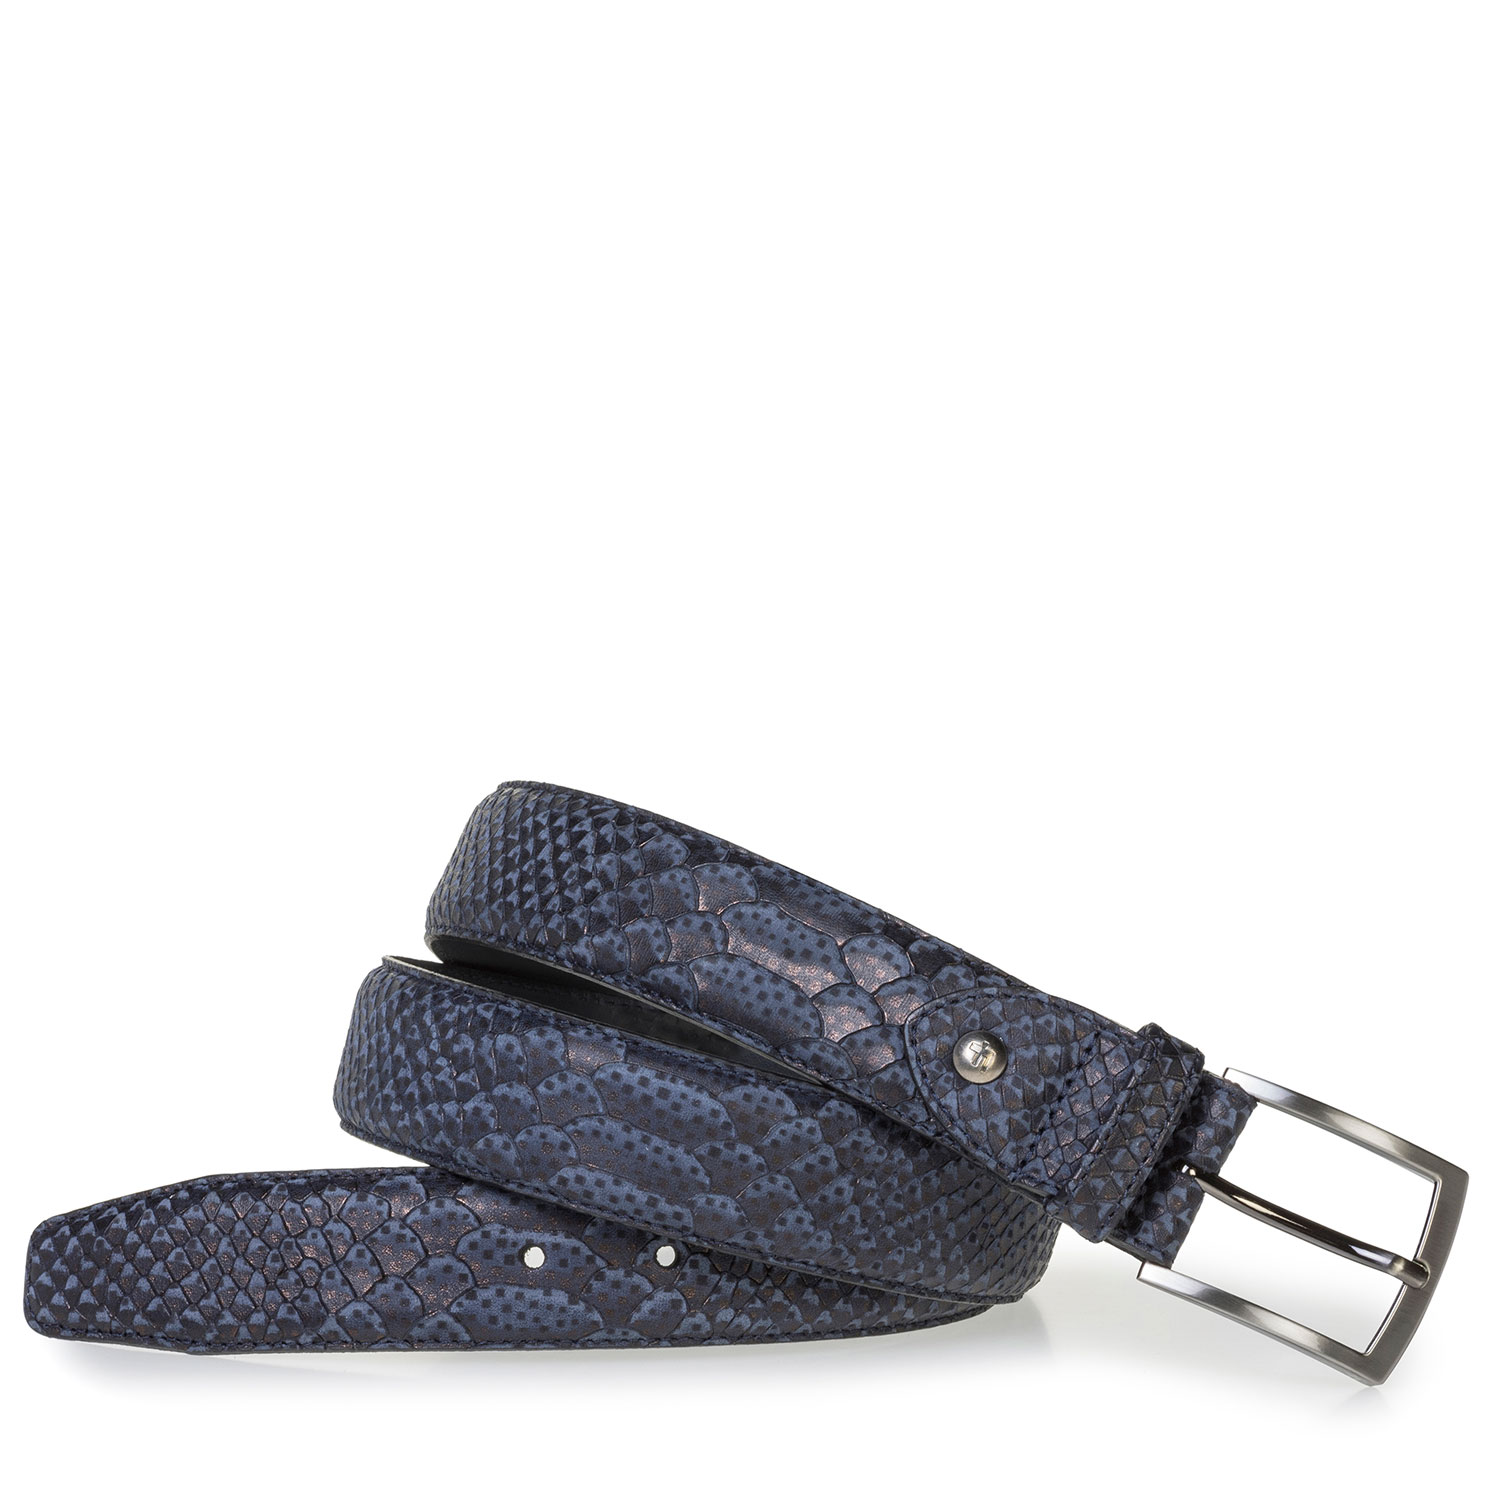 75200/68 - Dark blue belt with snake print